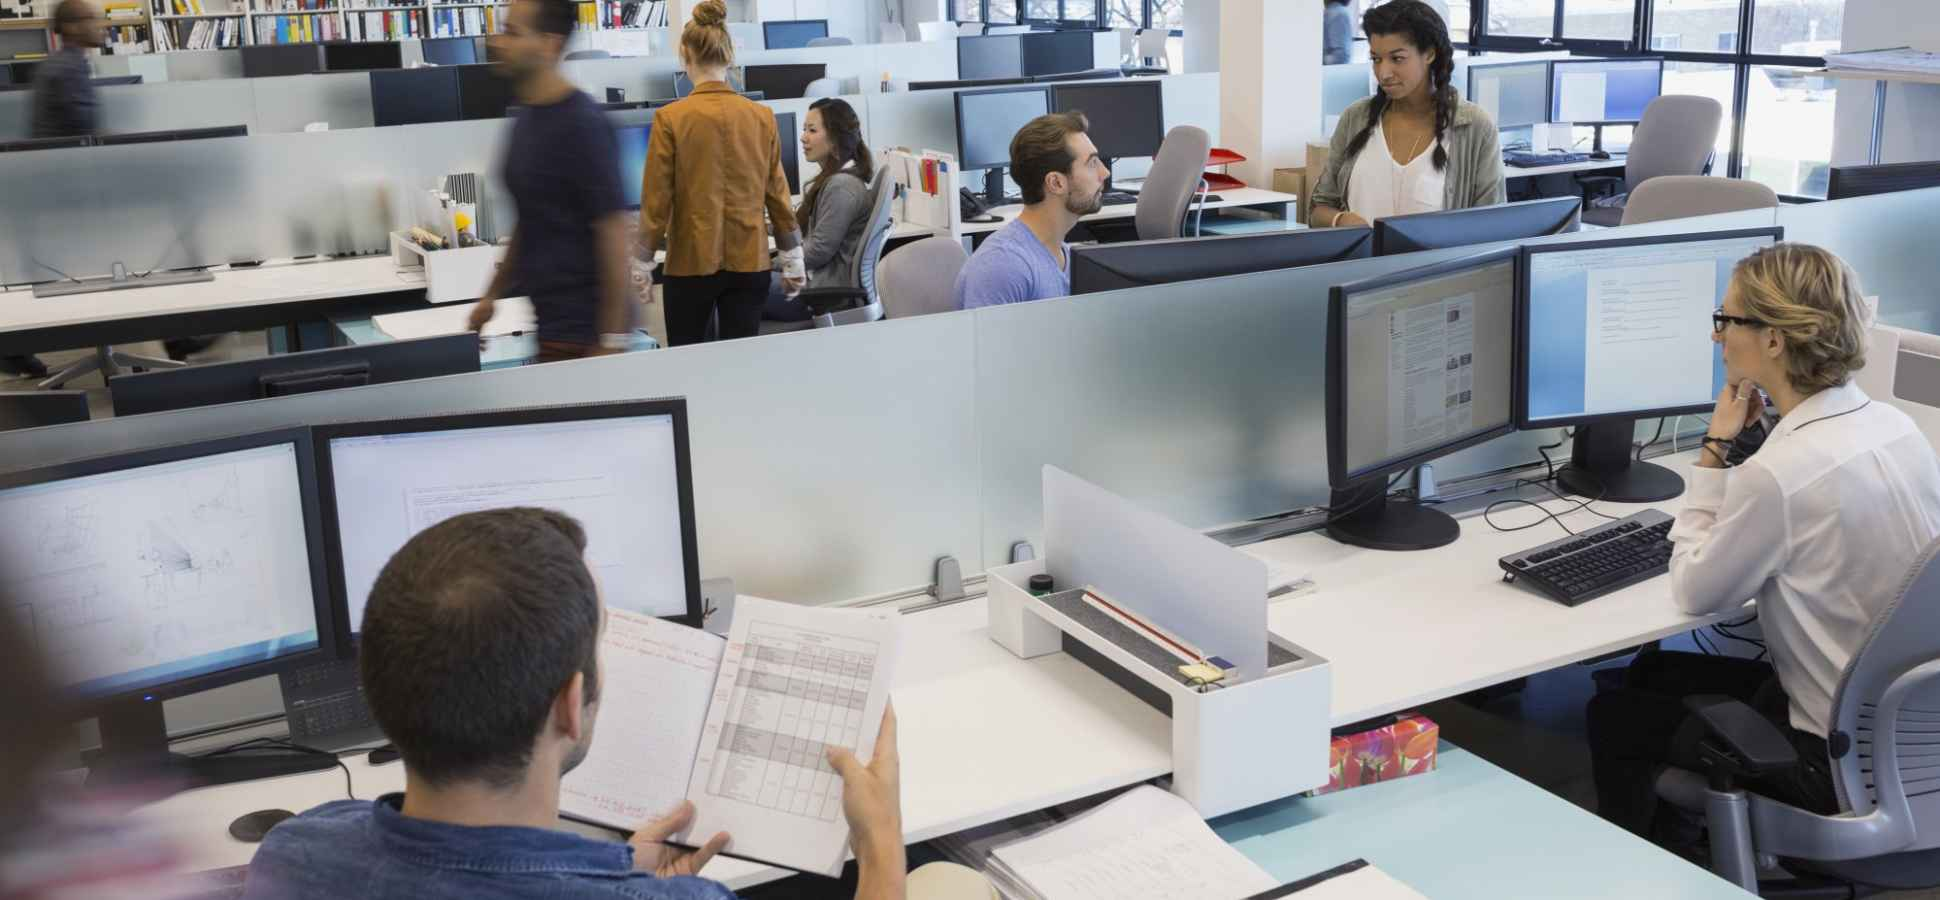 Employee Productivity: 3 Dos and Don'ts for Summer Months in the Office